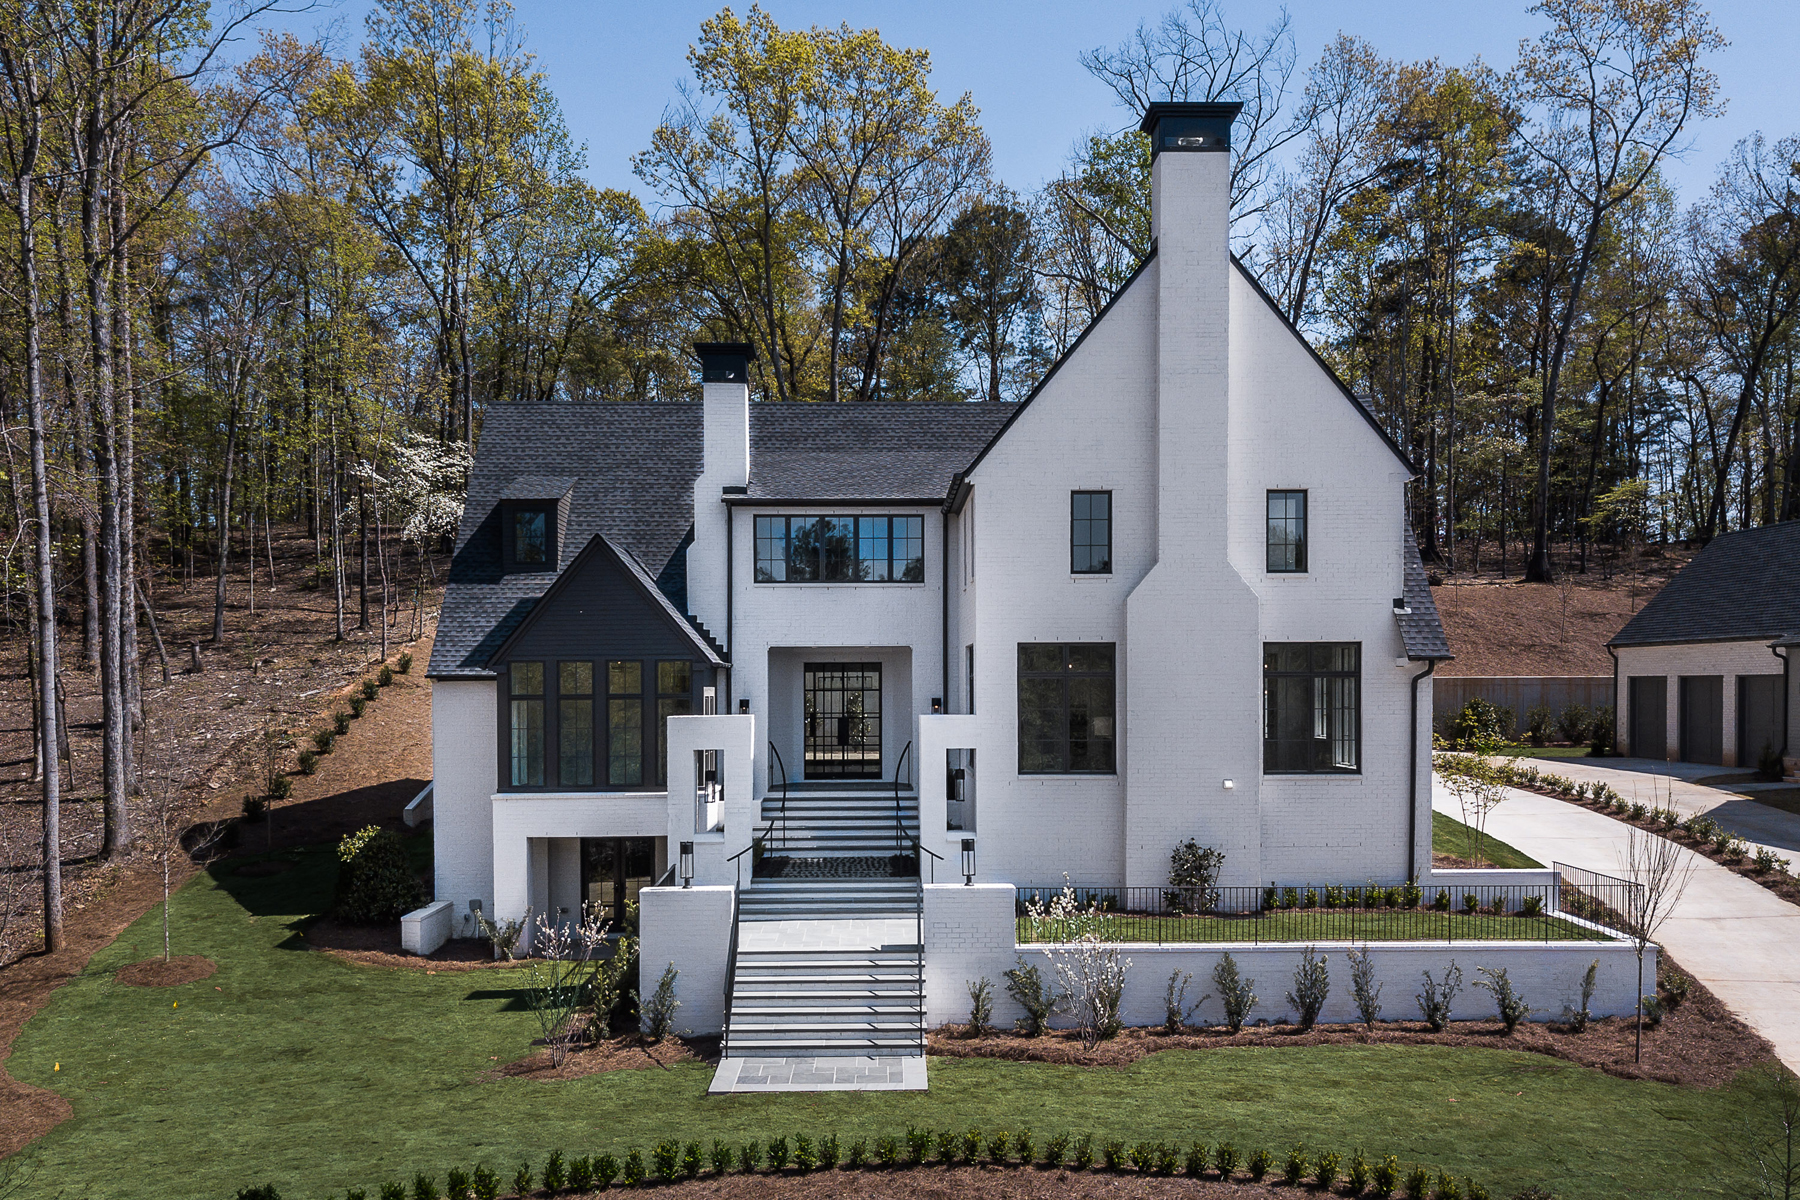 Single Family Home for Sale at Breathtakingly Stunning Custom Built Home In Desirable Sandy Springs Location 1875 Spalding Drive Atlanta, Georgia 30350 United States